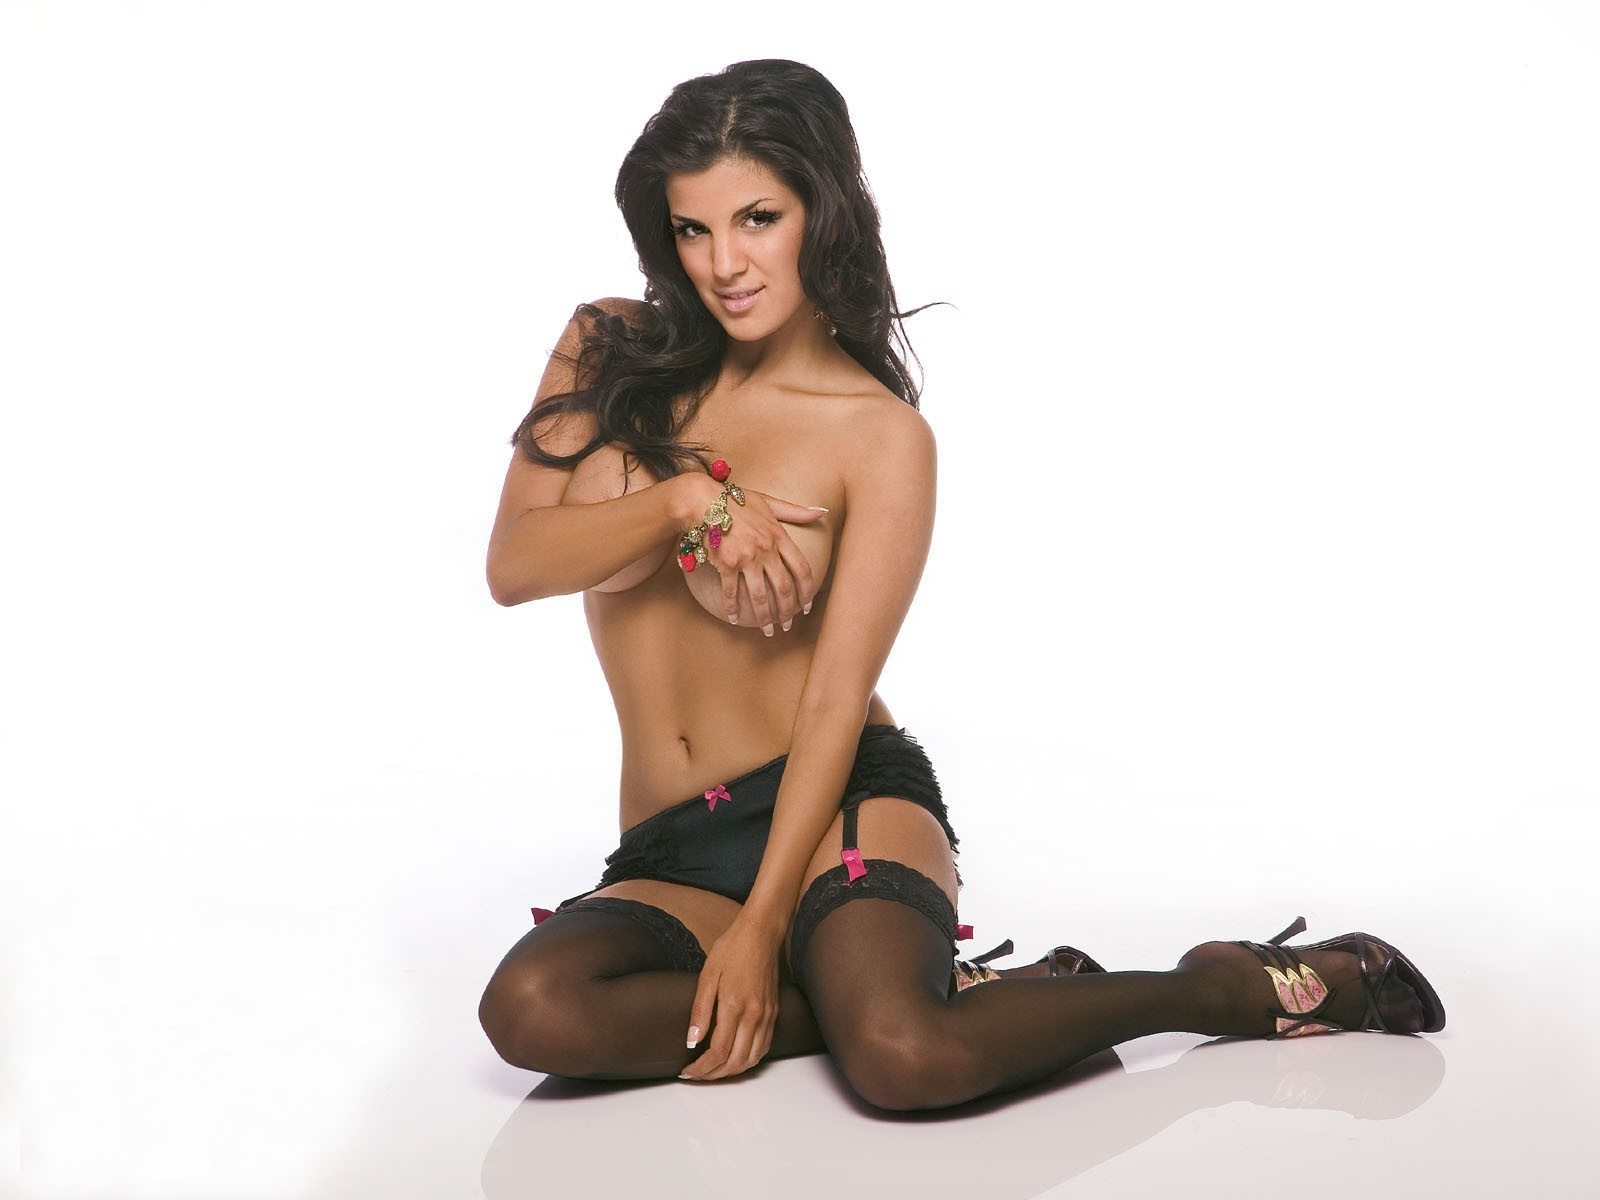 Pictures Of Aylar Lie